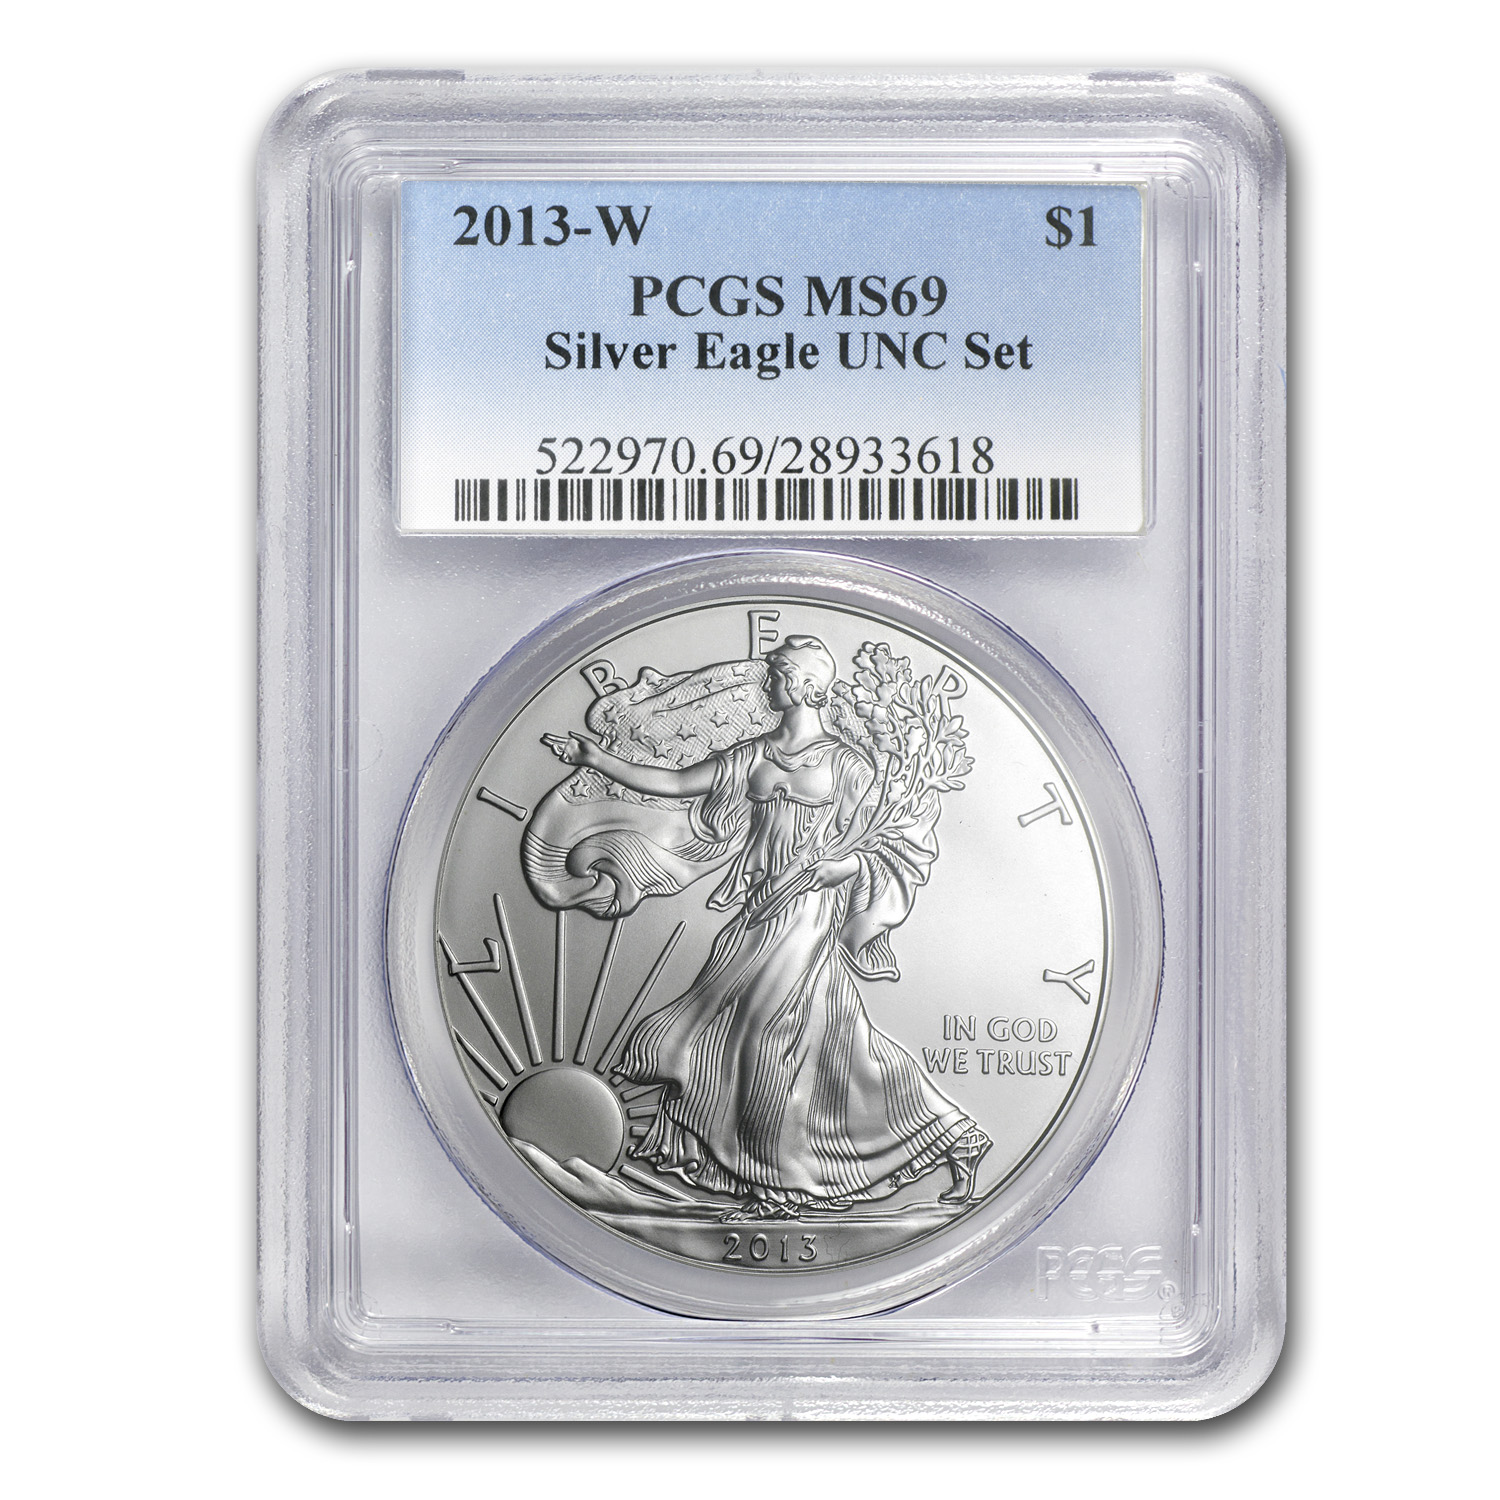 2013-W Burnished Silver Eagle - MS-69 PCGS from Unc Set